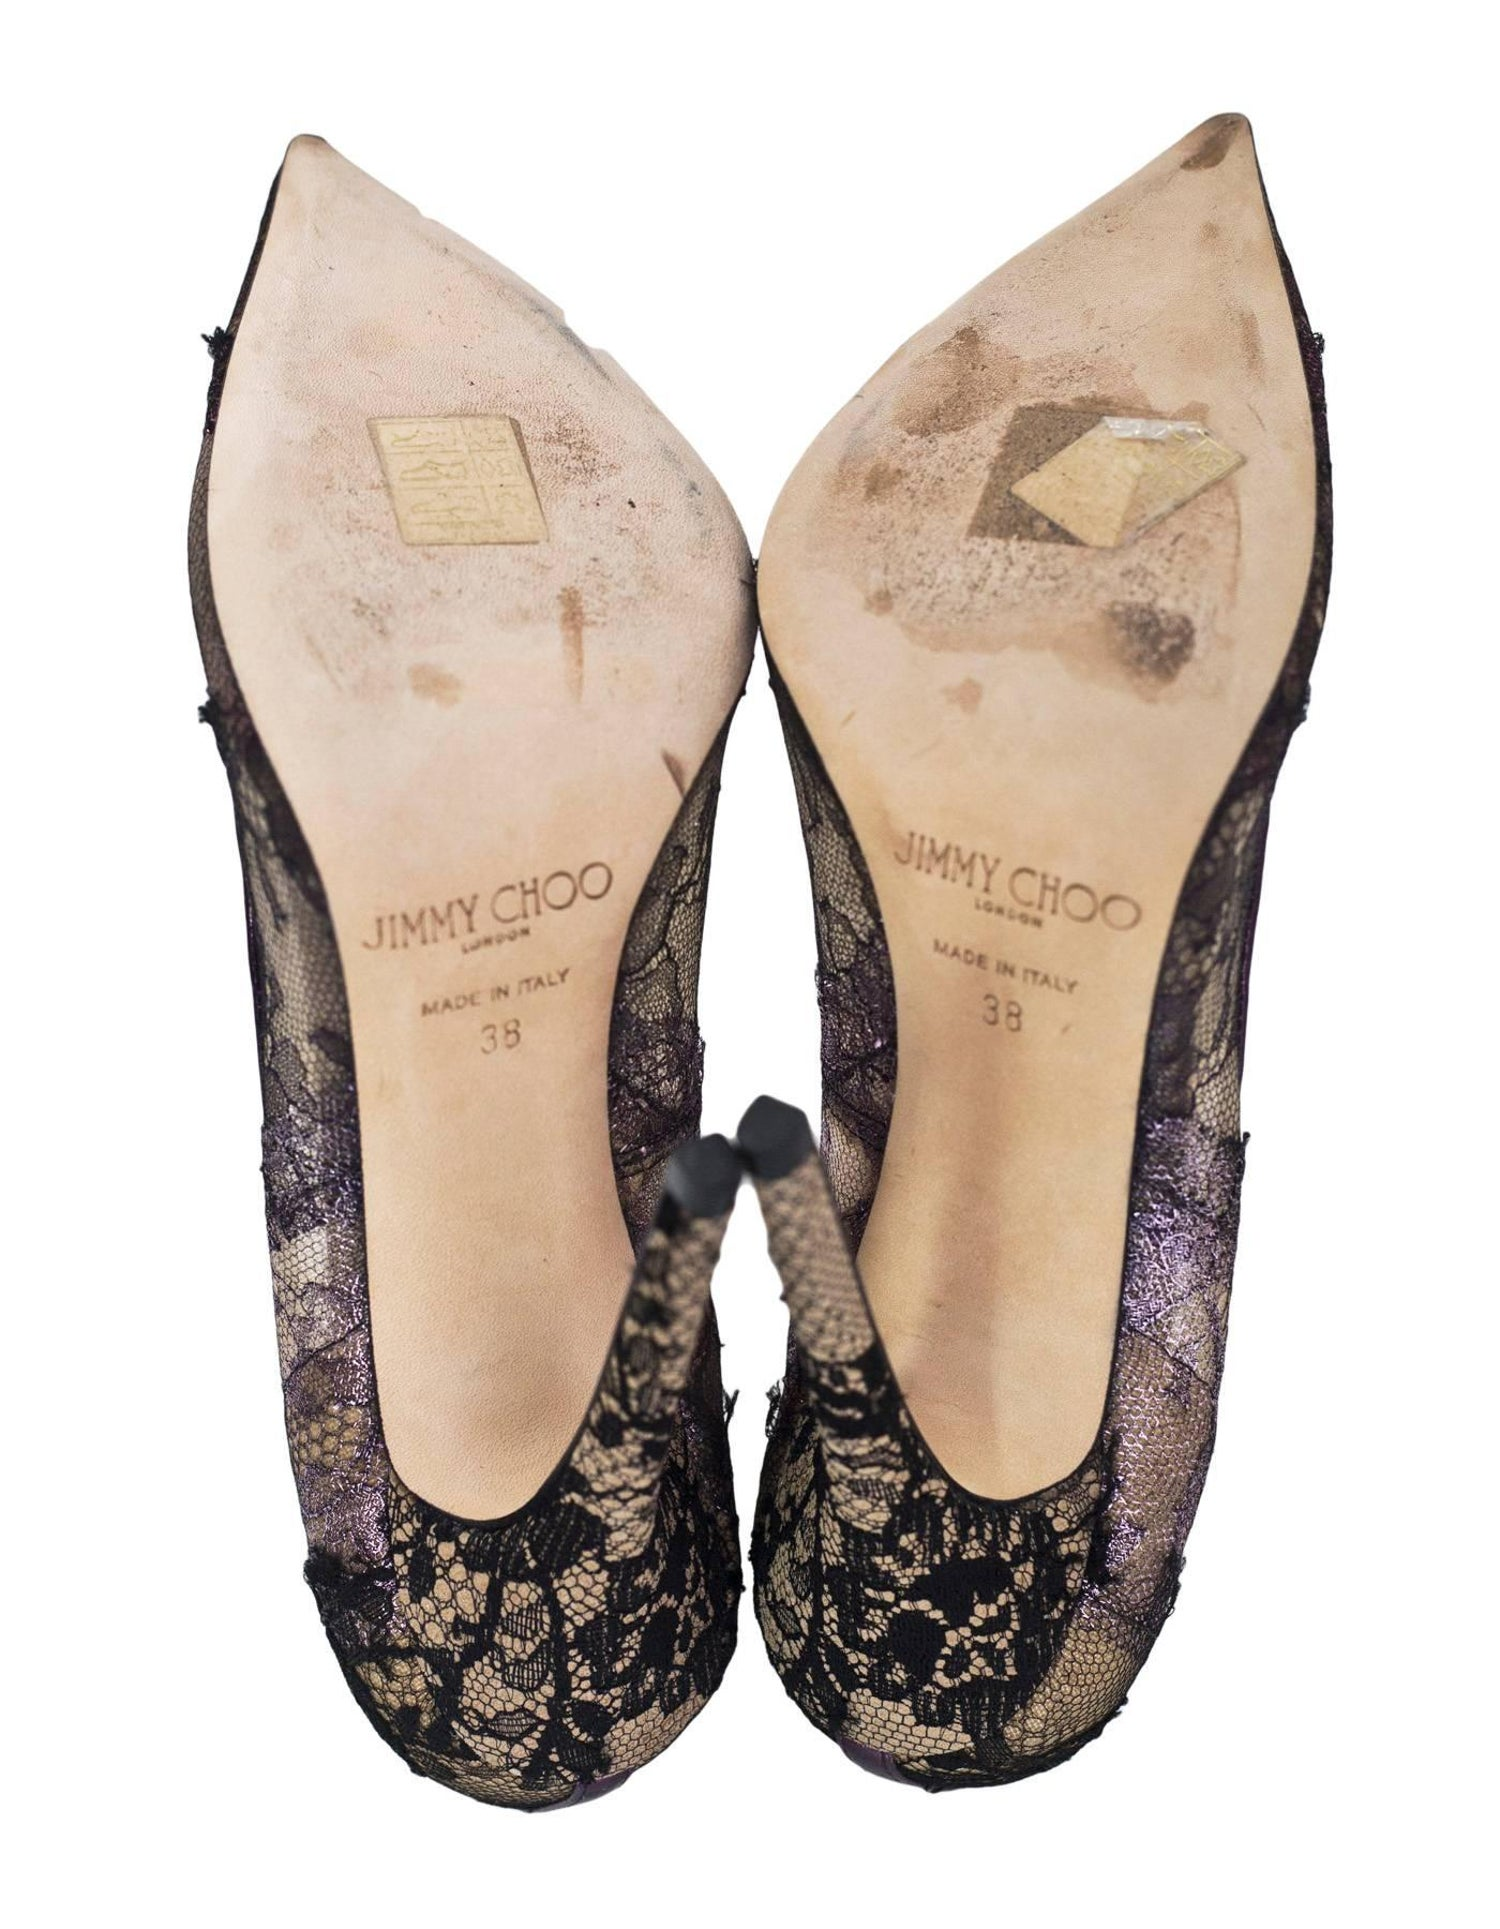 b6fa453b4178 Jimmy Choo Black and Purple Lace Pumps Sz 38 For Sale at 1stdibs